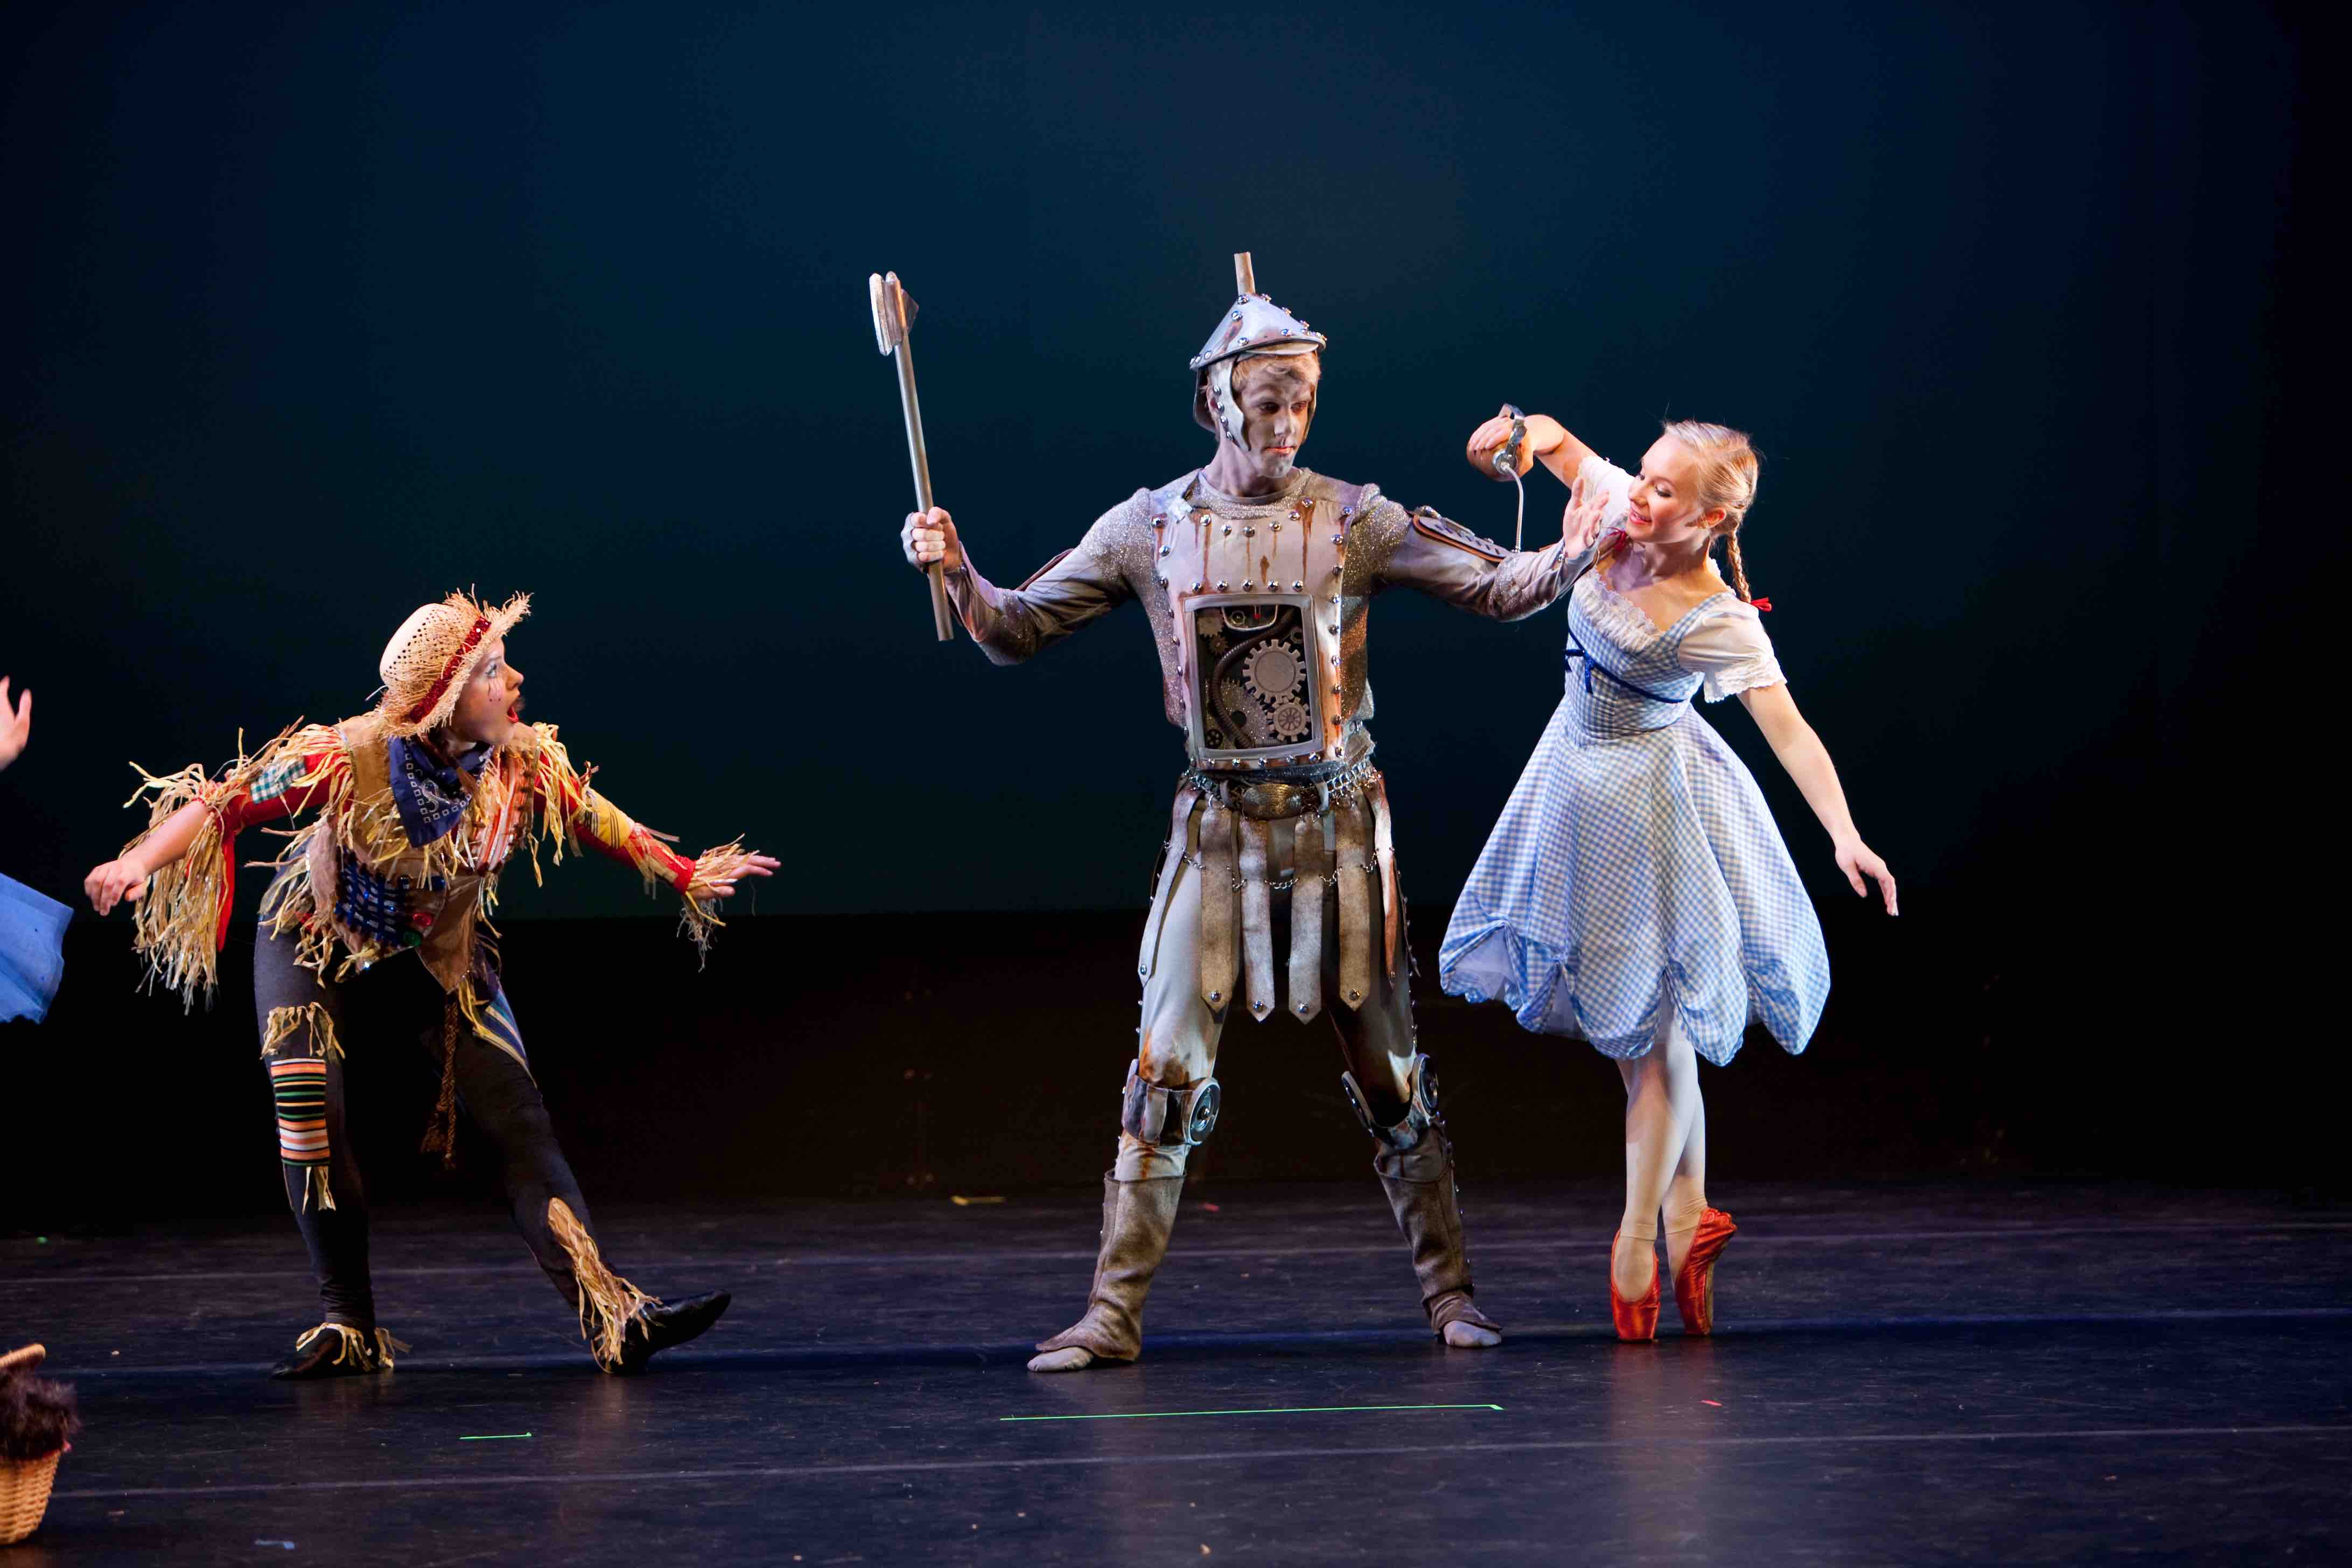 Dorthy oiling the tin man in The Wizard of Oz Ballet